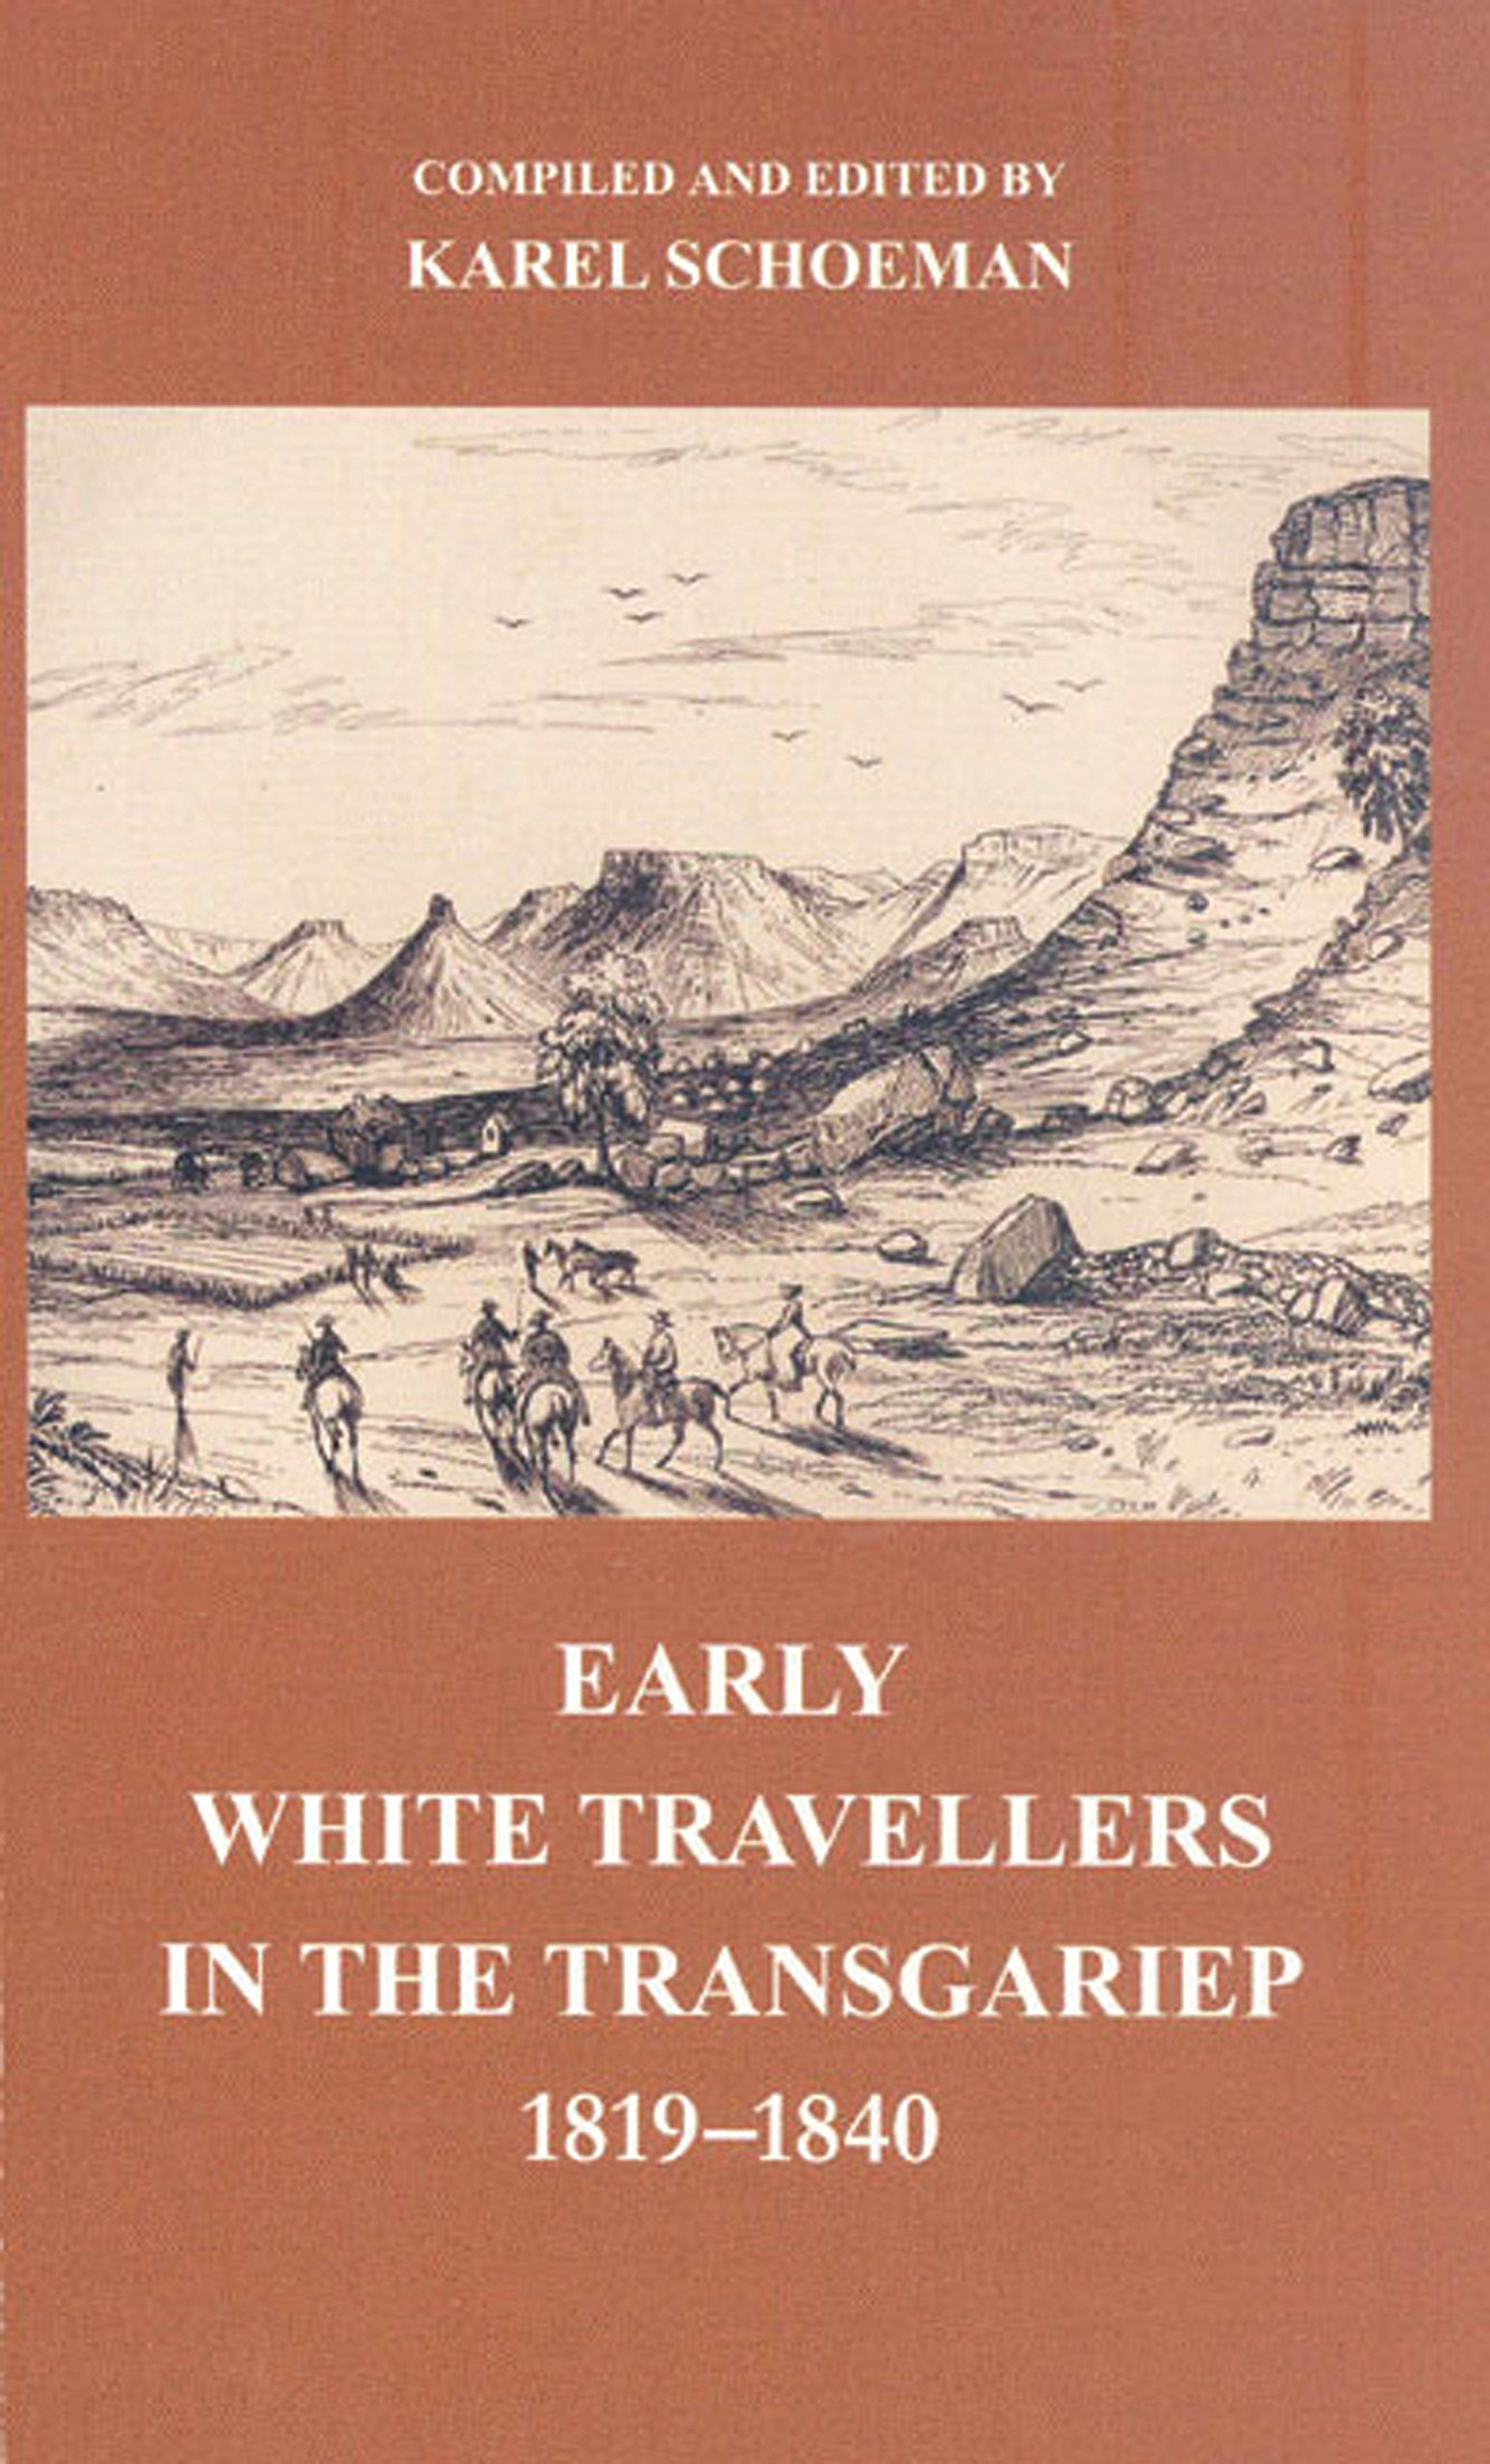 Early White Travellers in the Transgariep, 1819-1840 (Vrijstatia) ebook